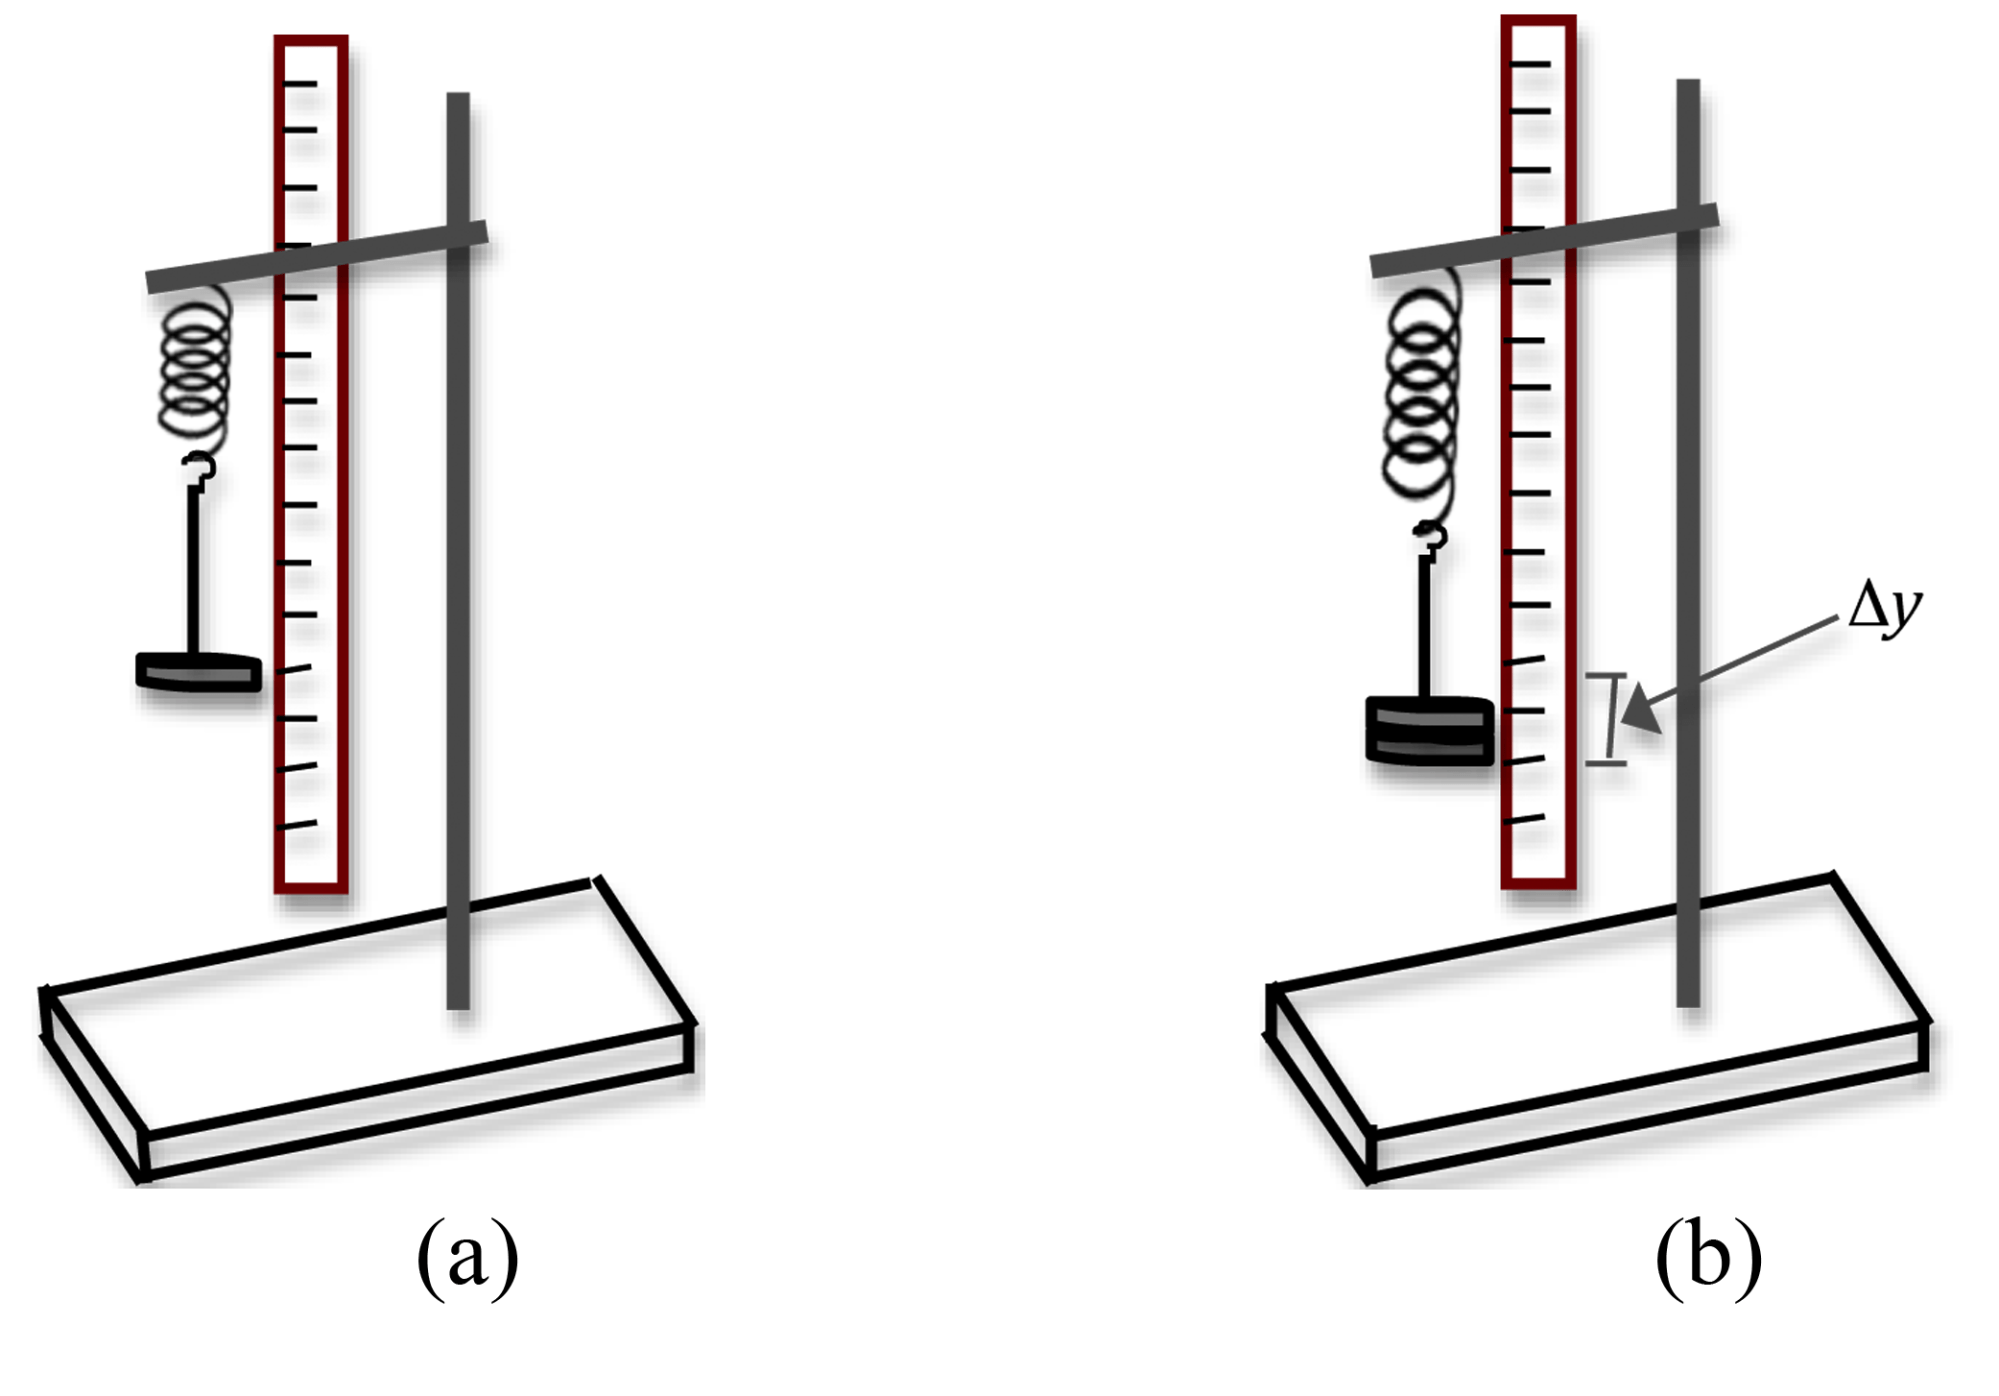 hight resolution of 4a is diagram image of weight hanger on spring suspended from stand next to ruler